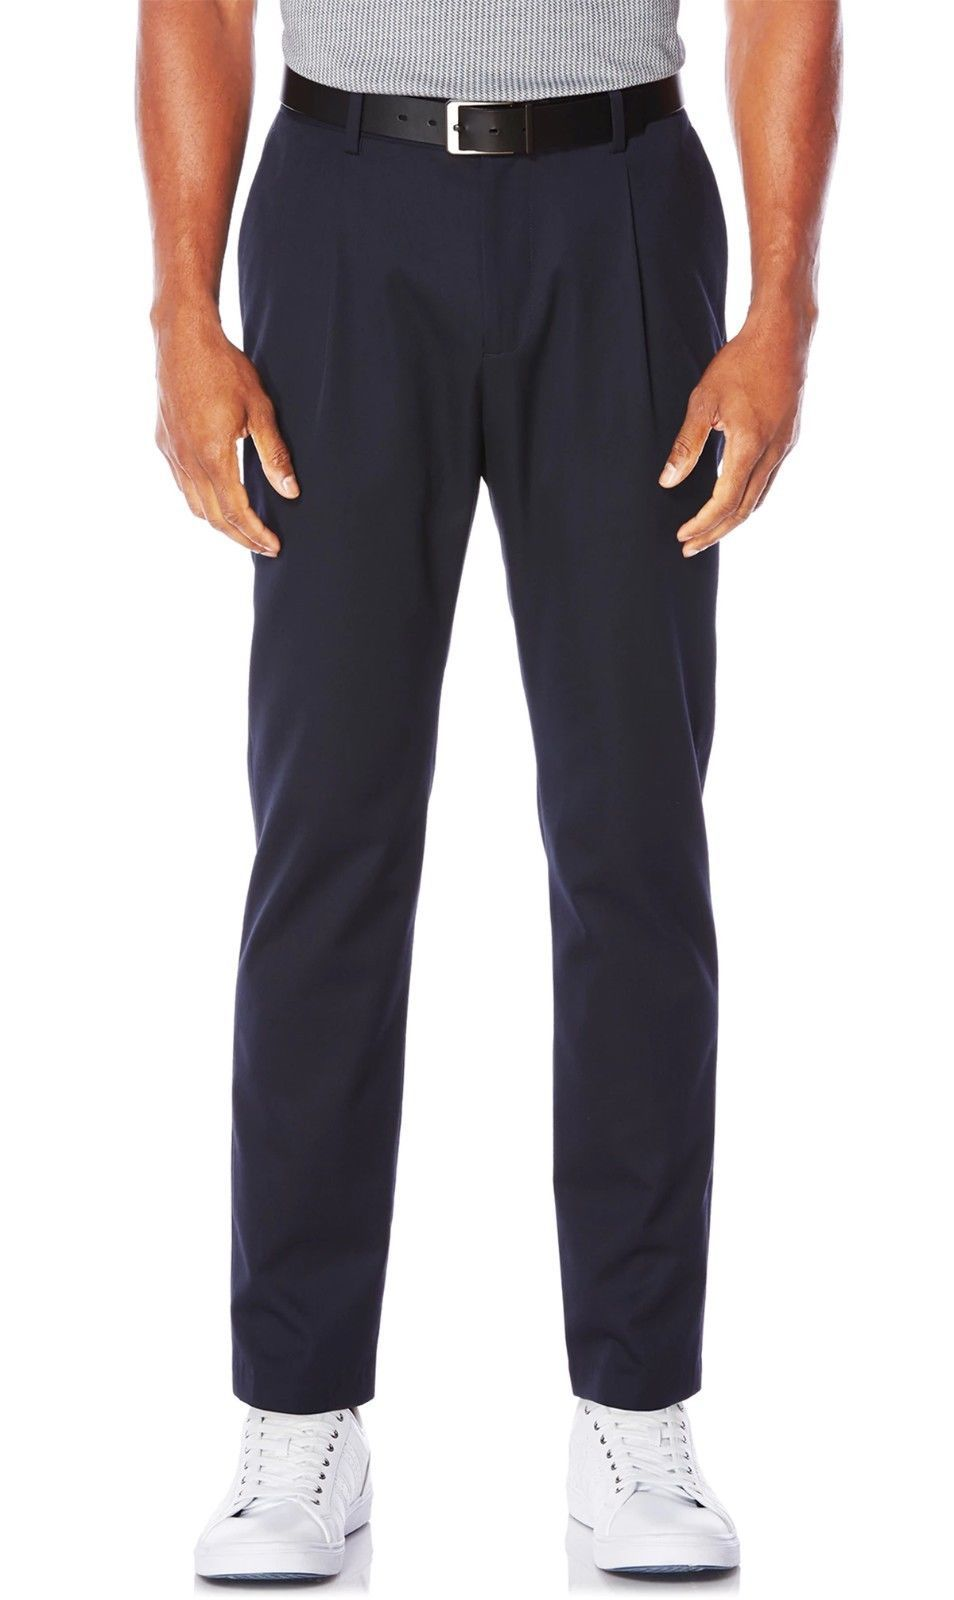 NEW MENS PERRY ELLIS SINGLE PLEATED TAPERED NAVY BLUE PANTS 30 X 30 $79